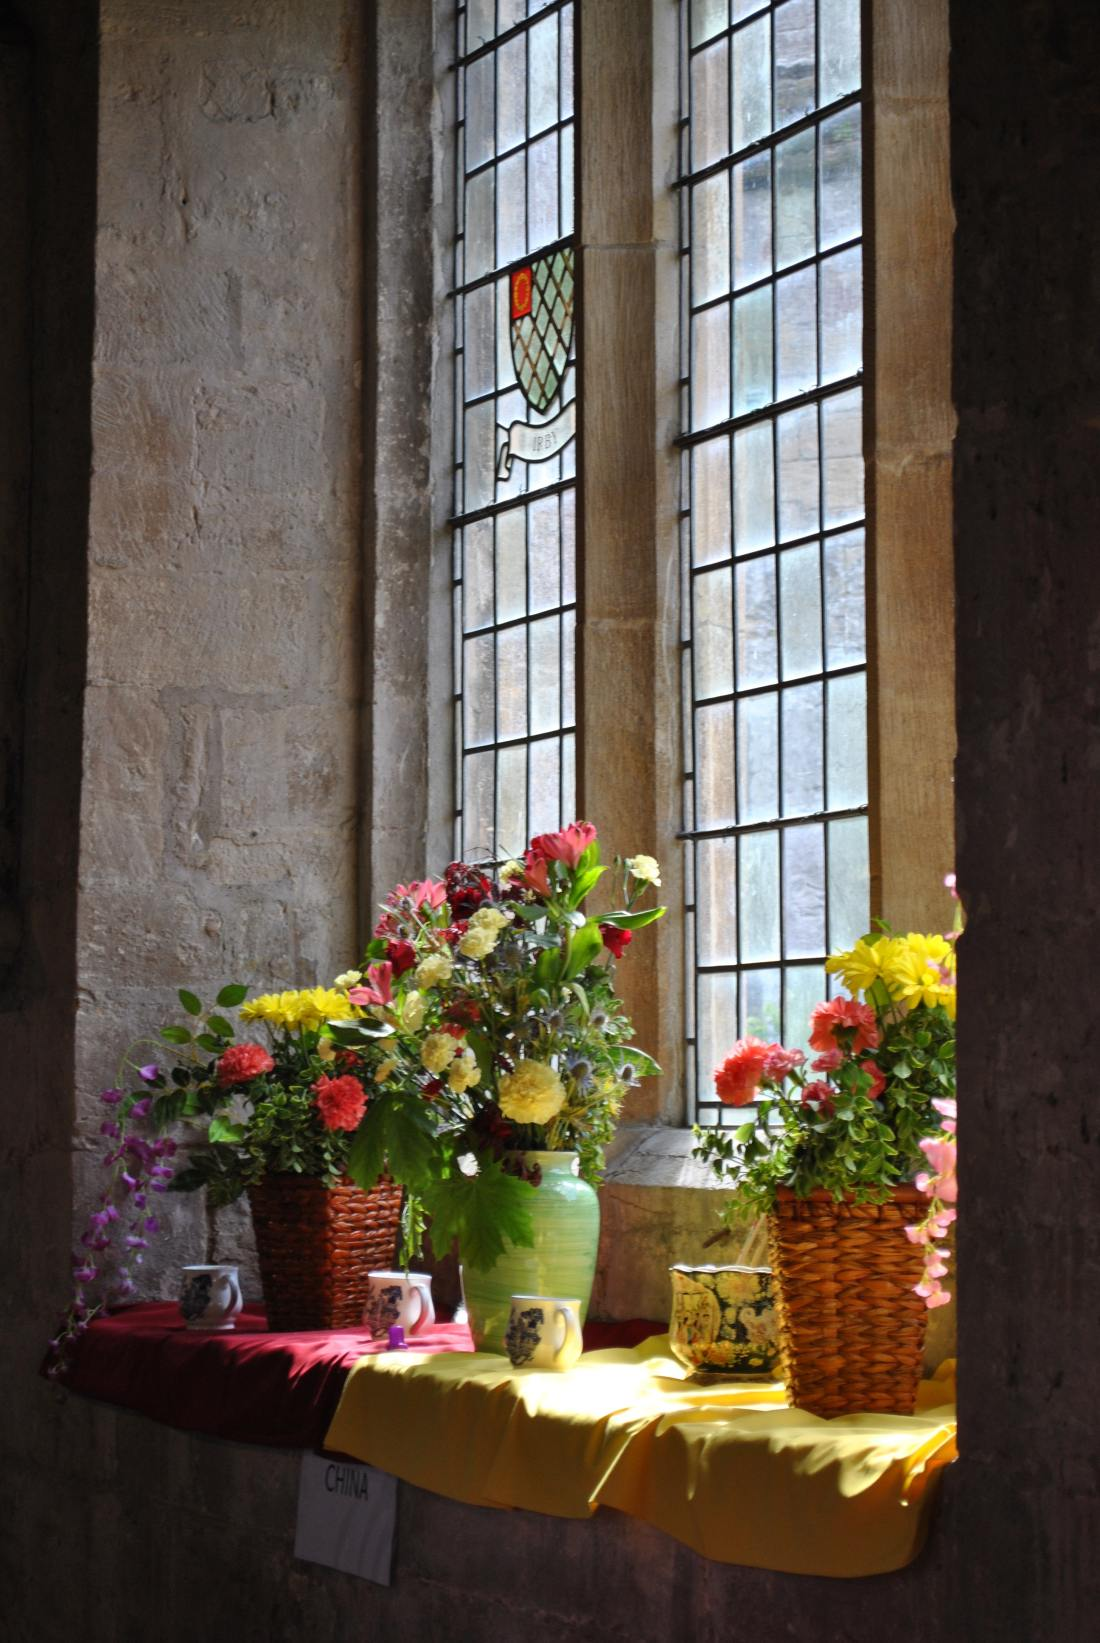 flowers-christianity-sunlight-church-window-3678400